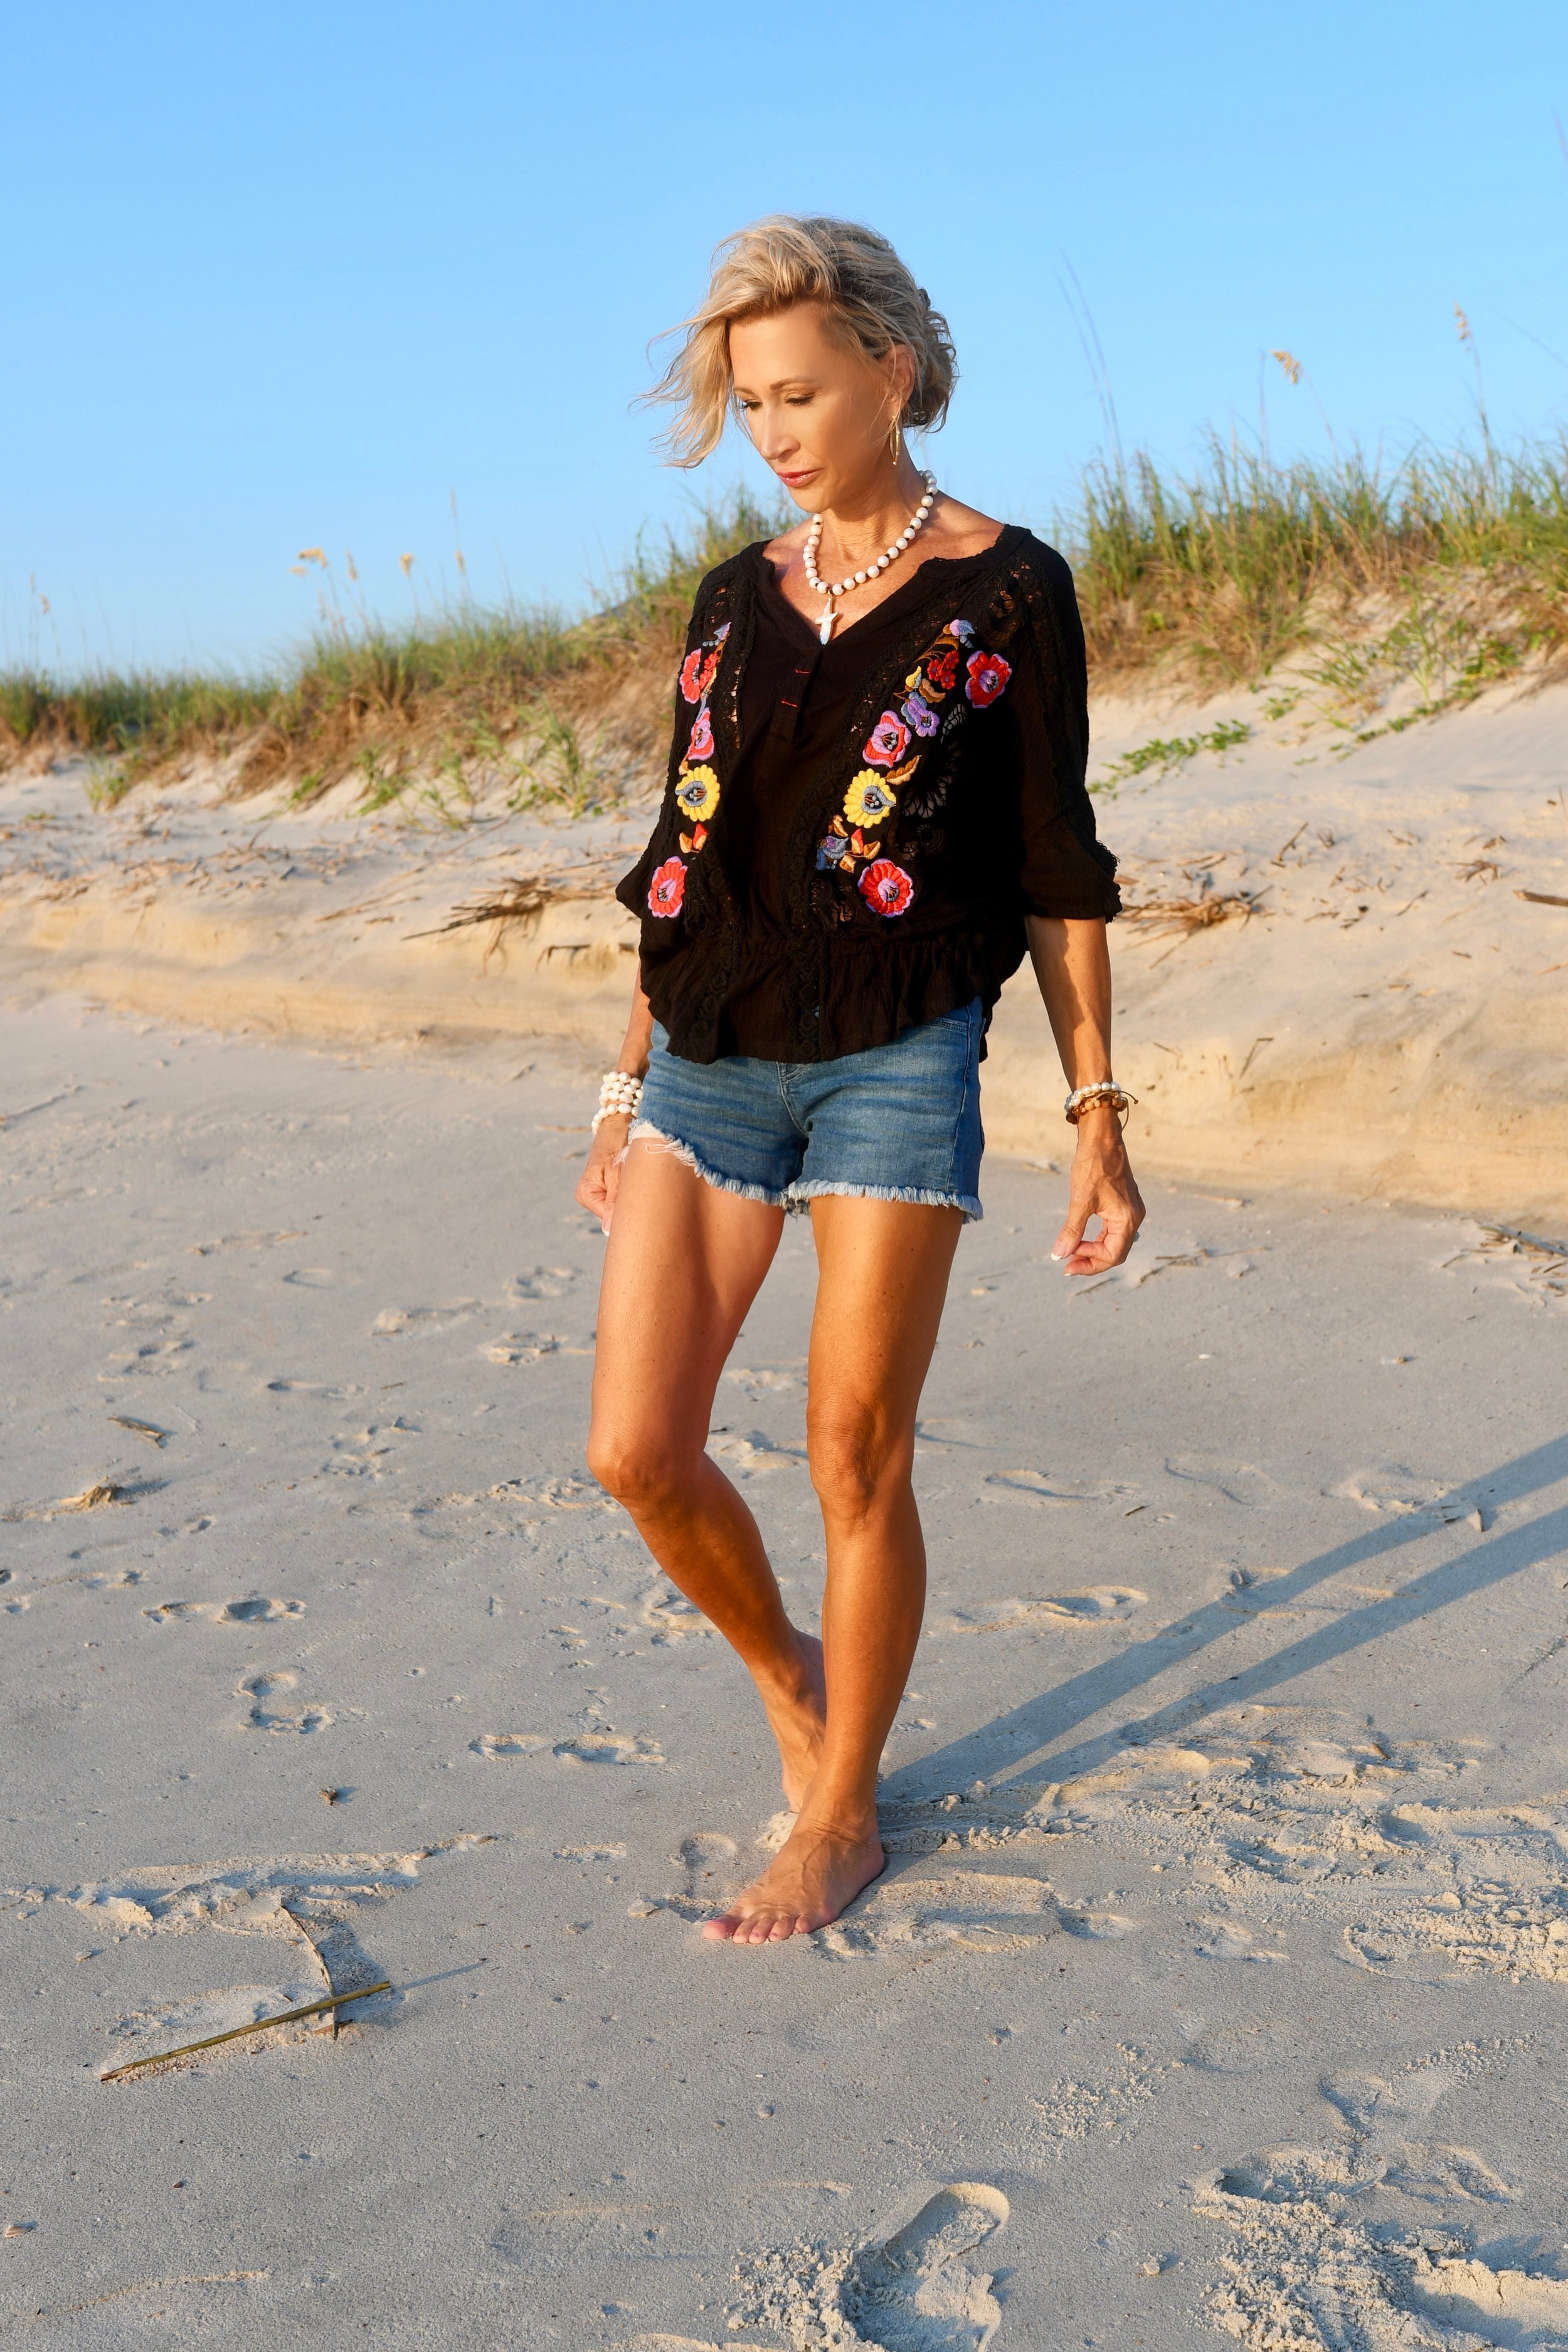 Free People Embroidered top - Crazy Blonde Life